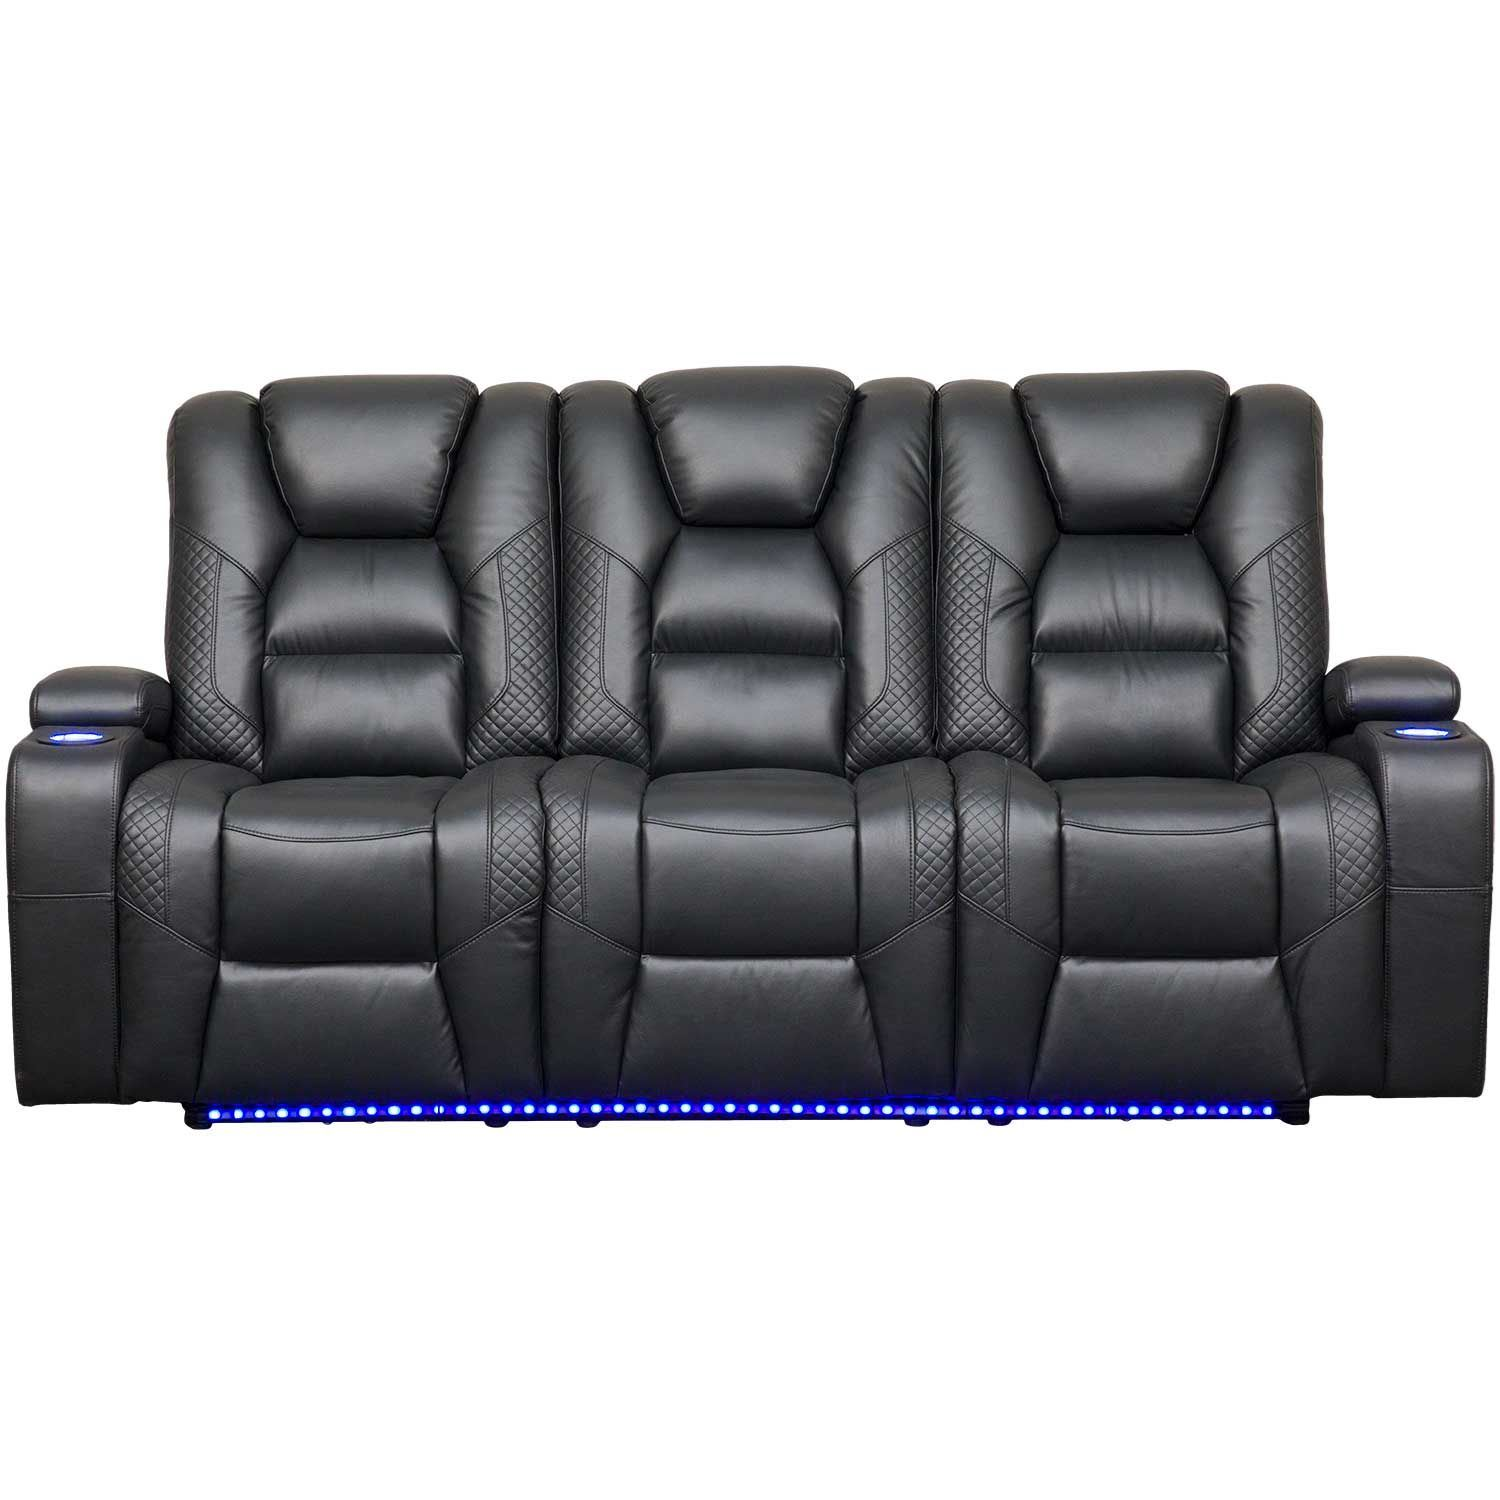 Incredible Ryker Power Reclining Sofa With Drop Table Gamerscity Chair Design For Home Gamerscityorg